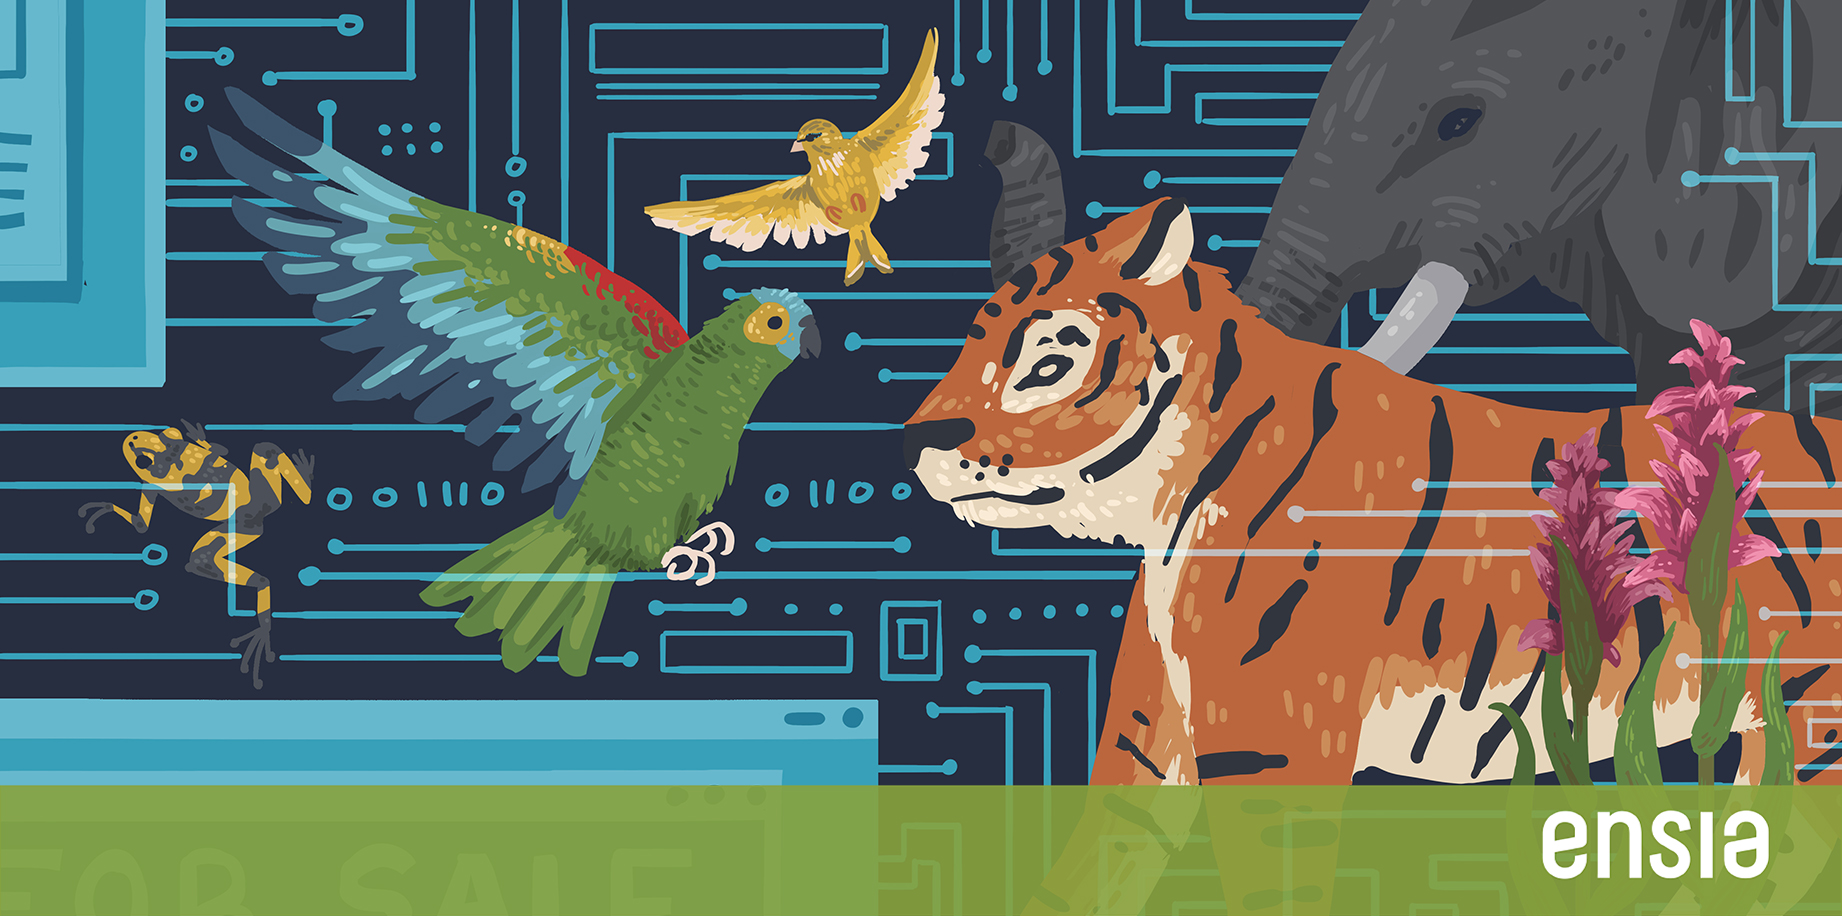 Opinion: Calling all hackers — endangered wildlife needs you | Ensia